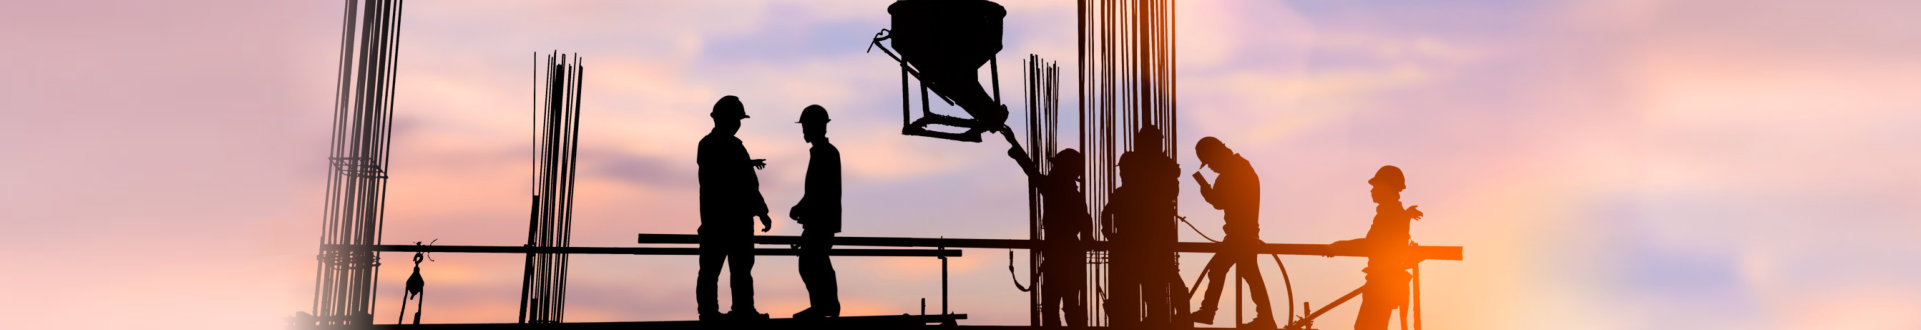 Oil and Gas Construction | 3E Global Corporation and 3E Resources